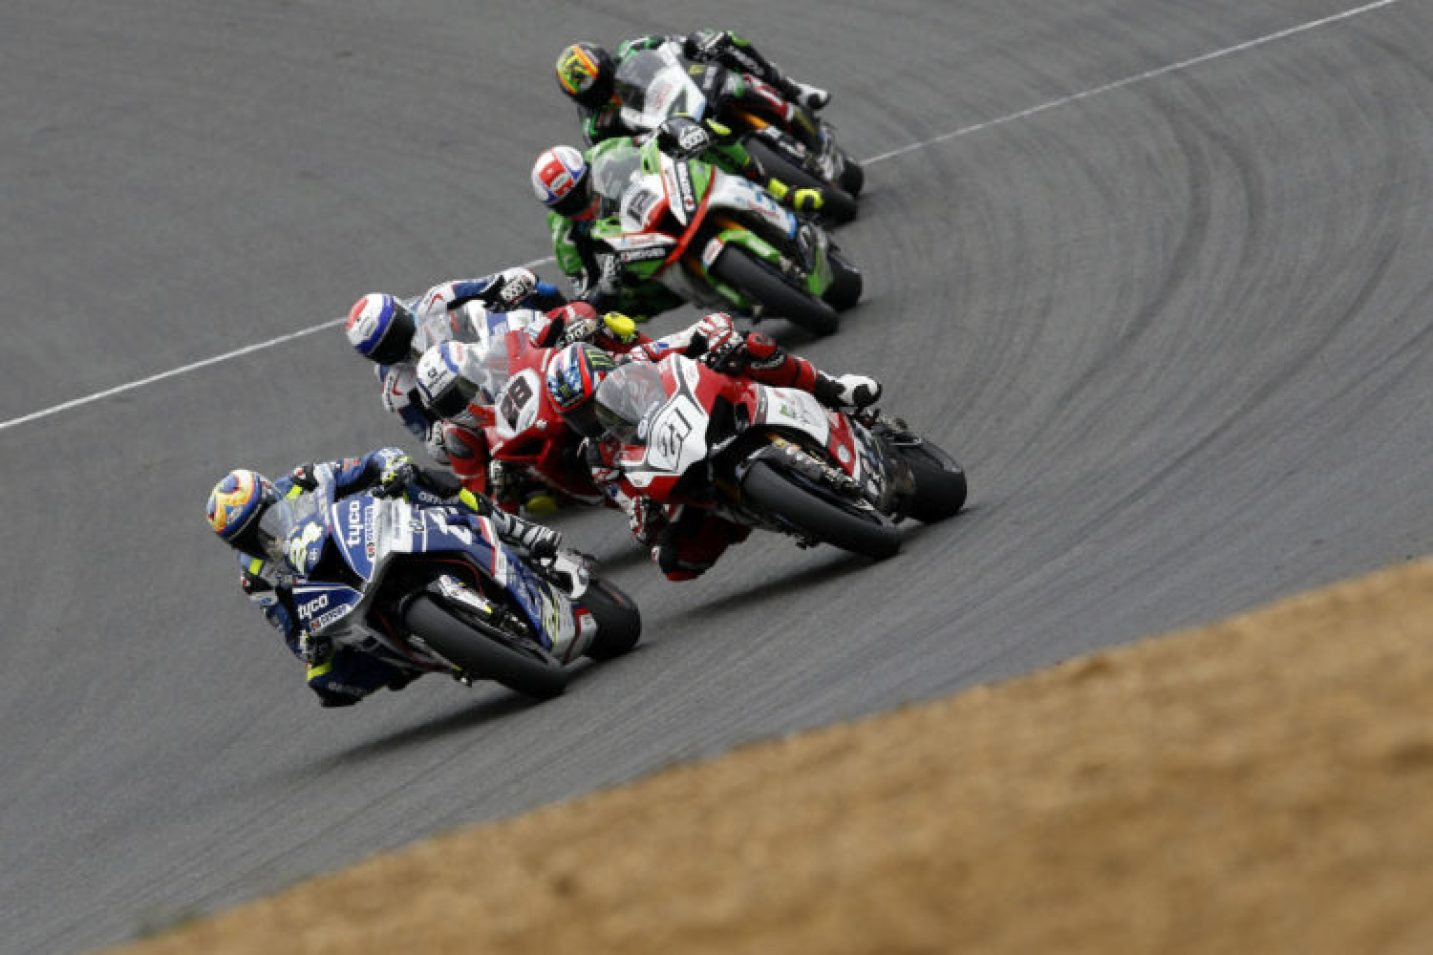 Christian Iddon heads the pack at Brands Hatch